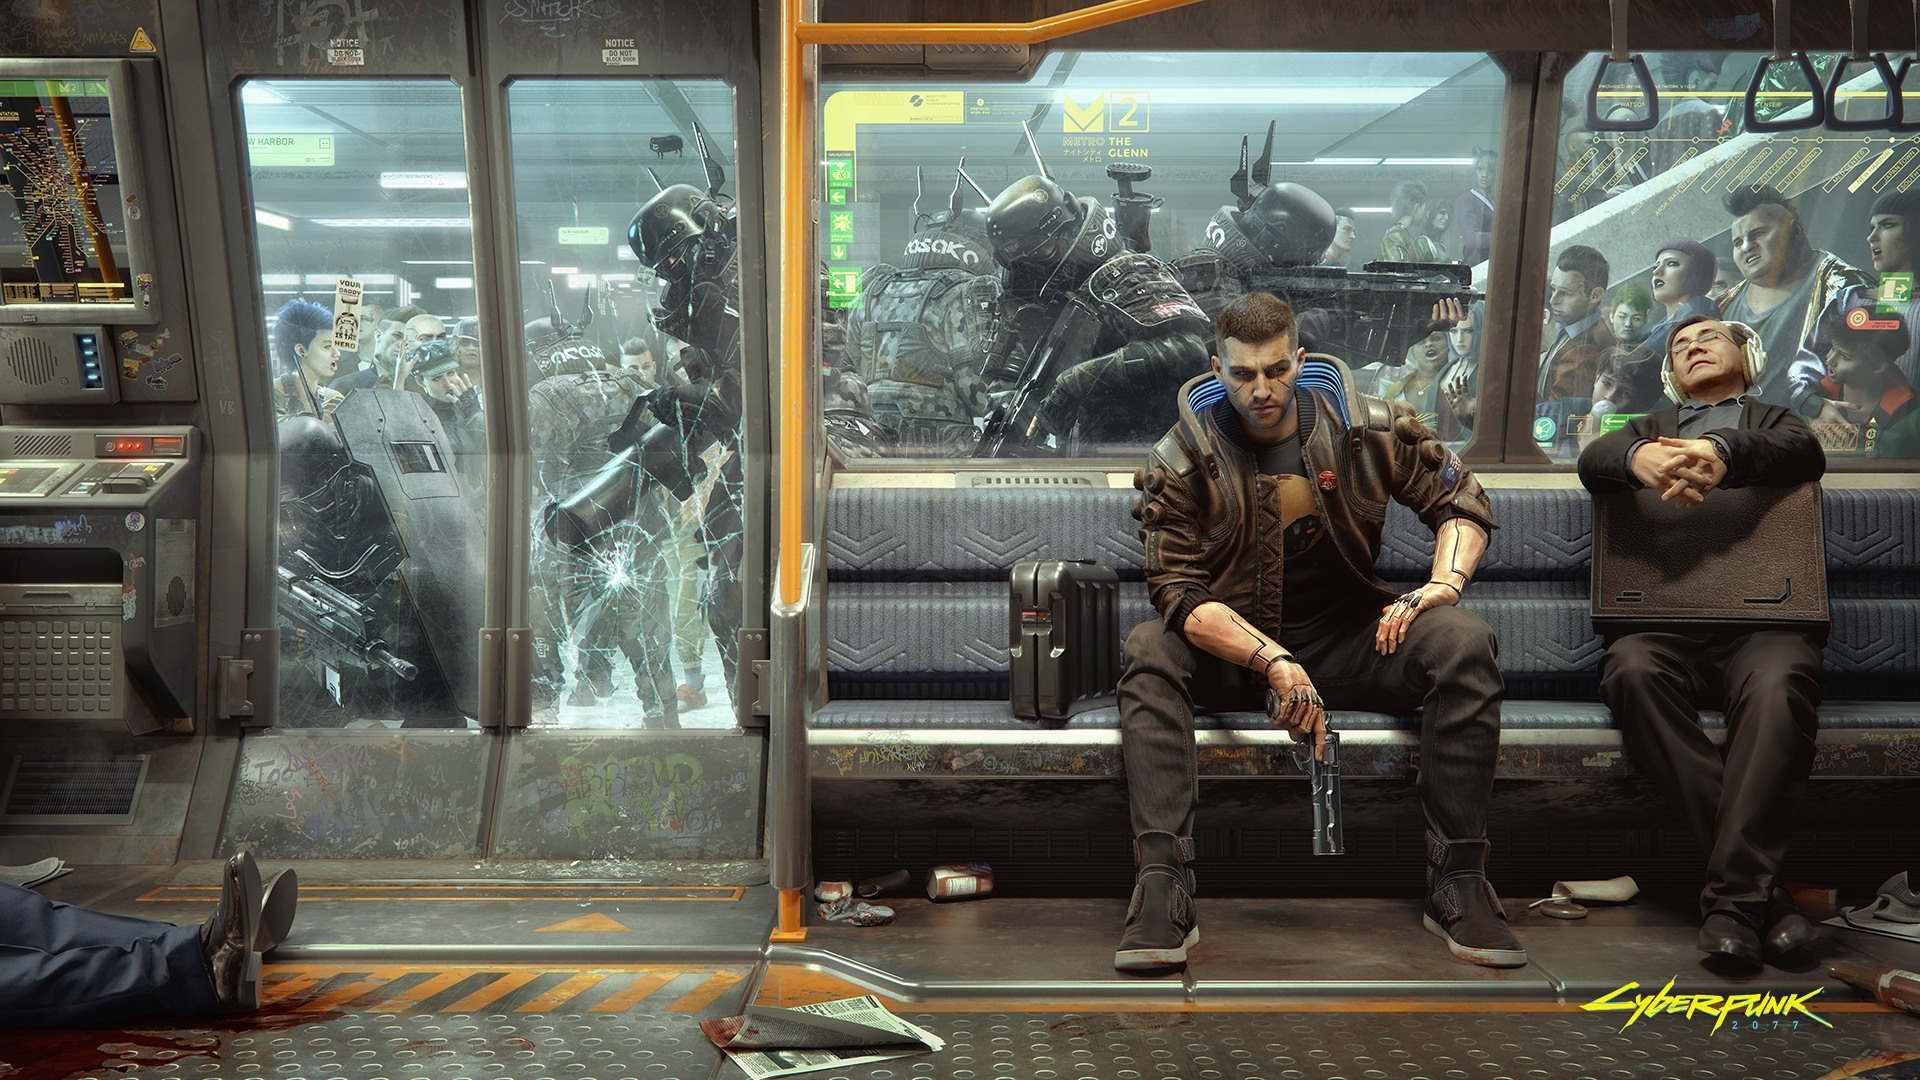 This Cyberpunk 2077 Wallpaper Is Packed With Tons Of Details For